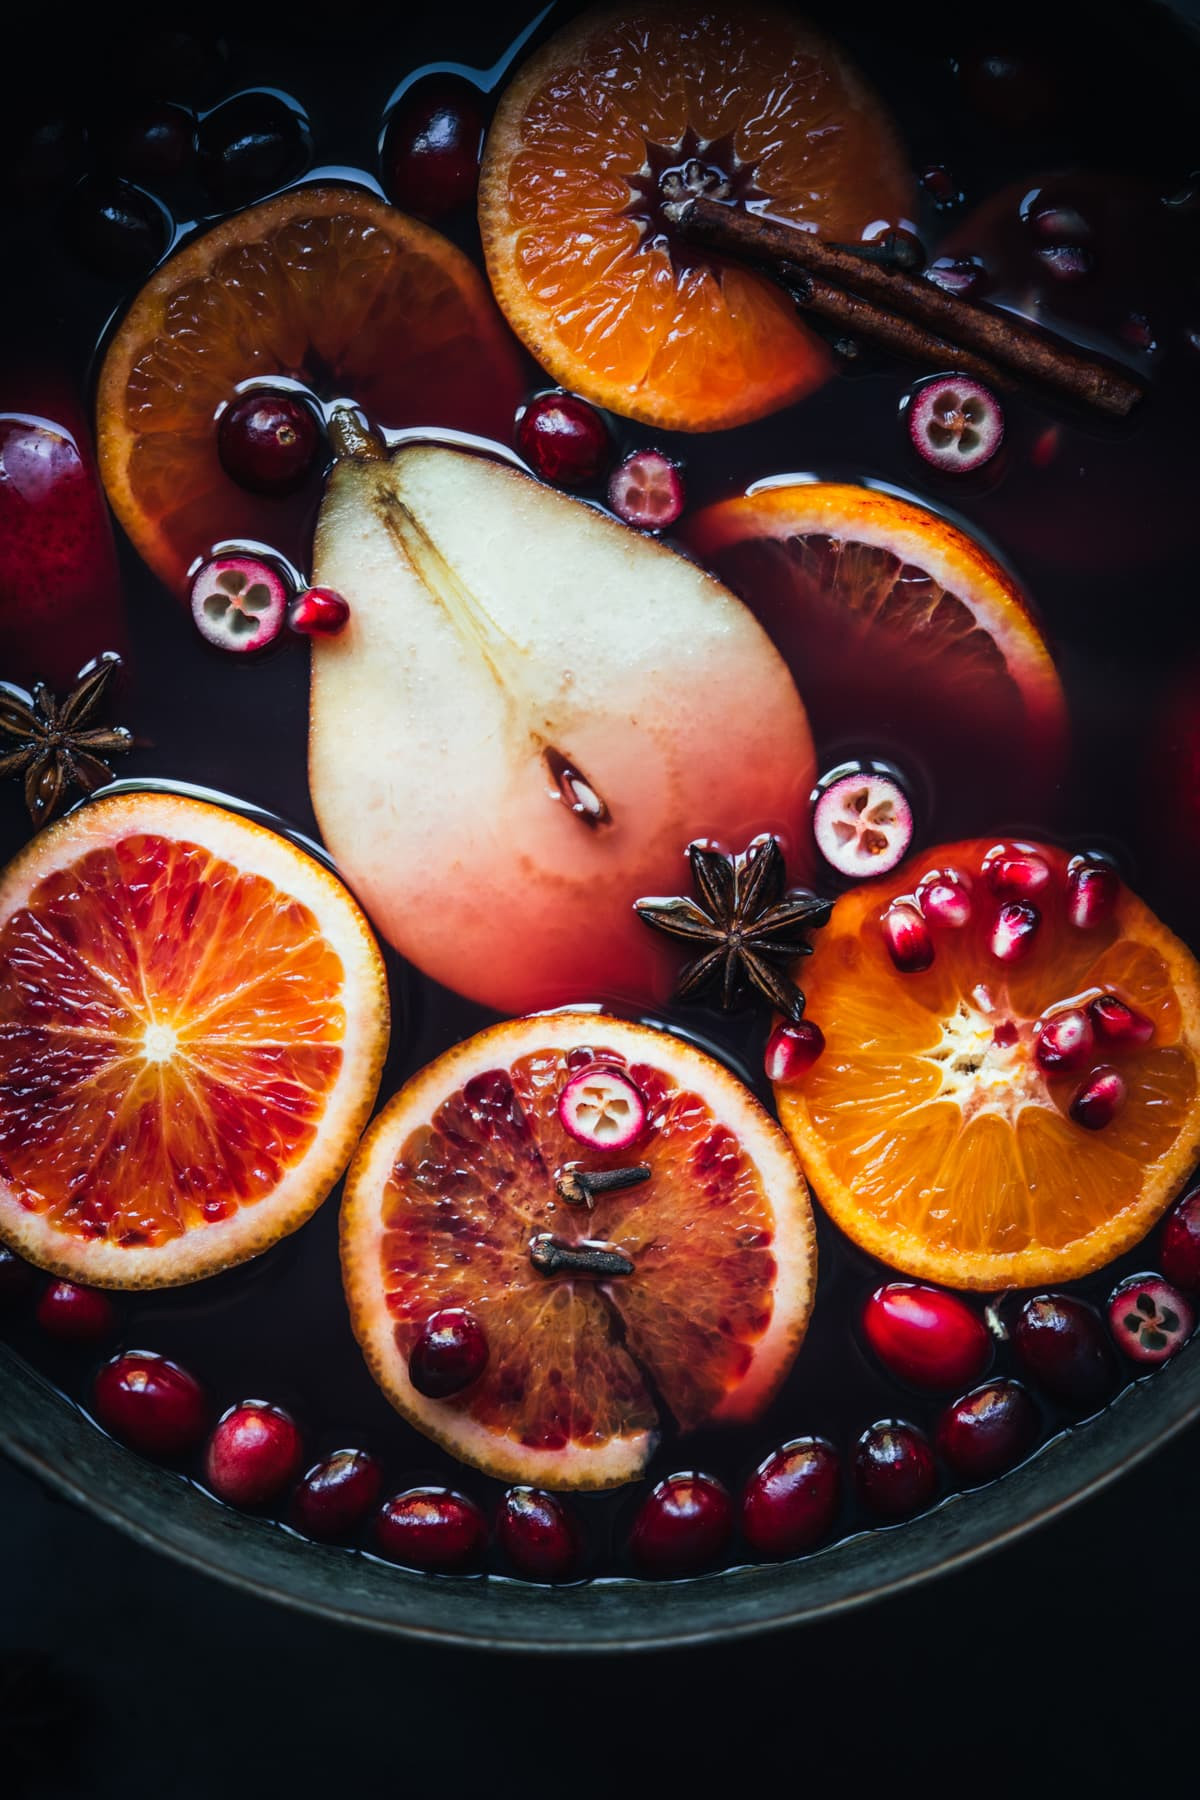 close up view of fruits and spices in mulled wine in pot.